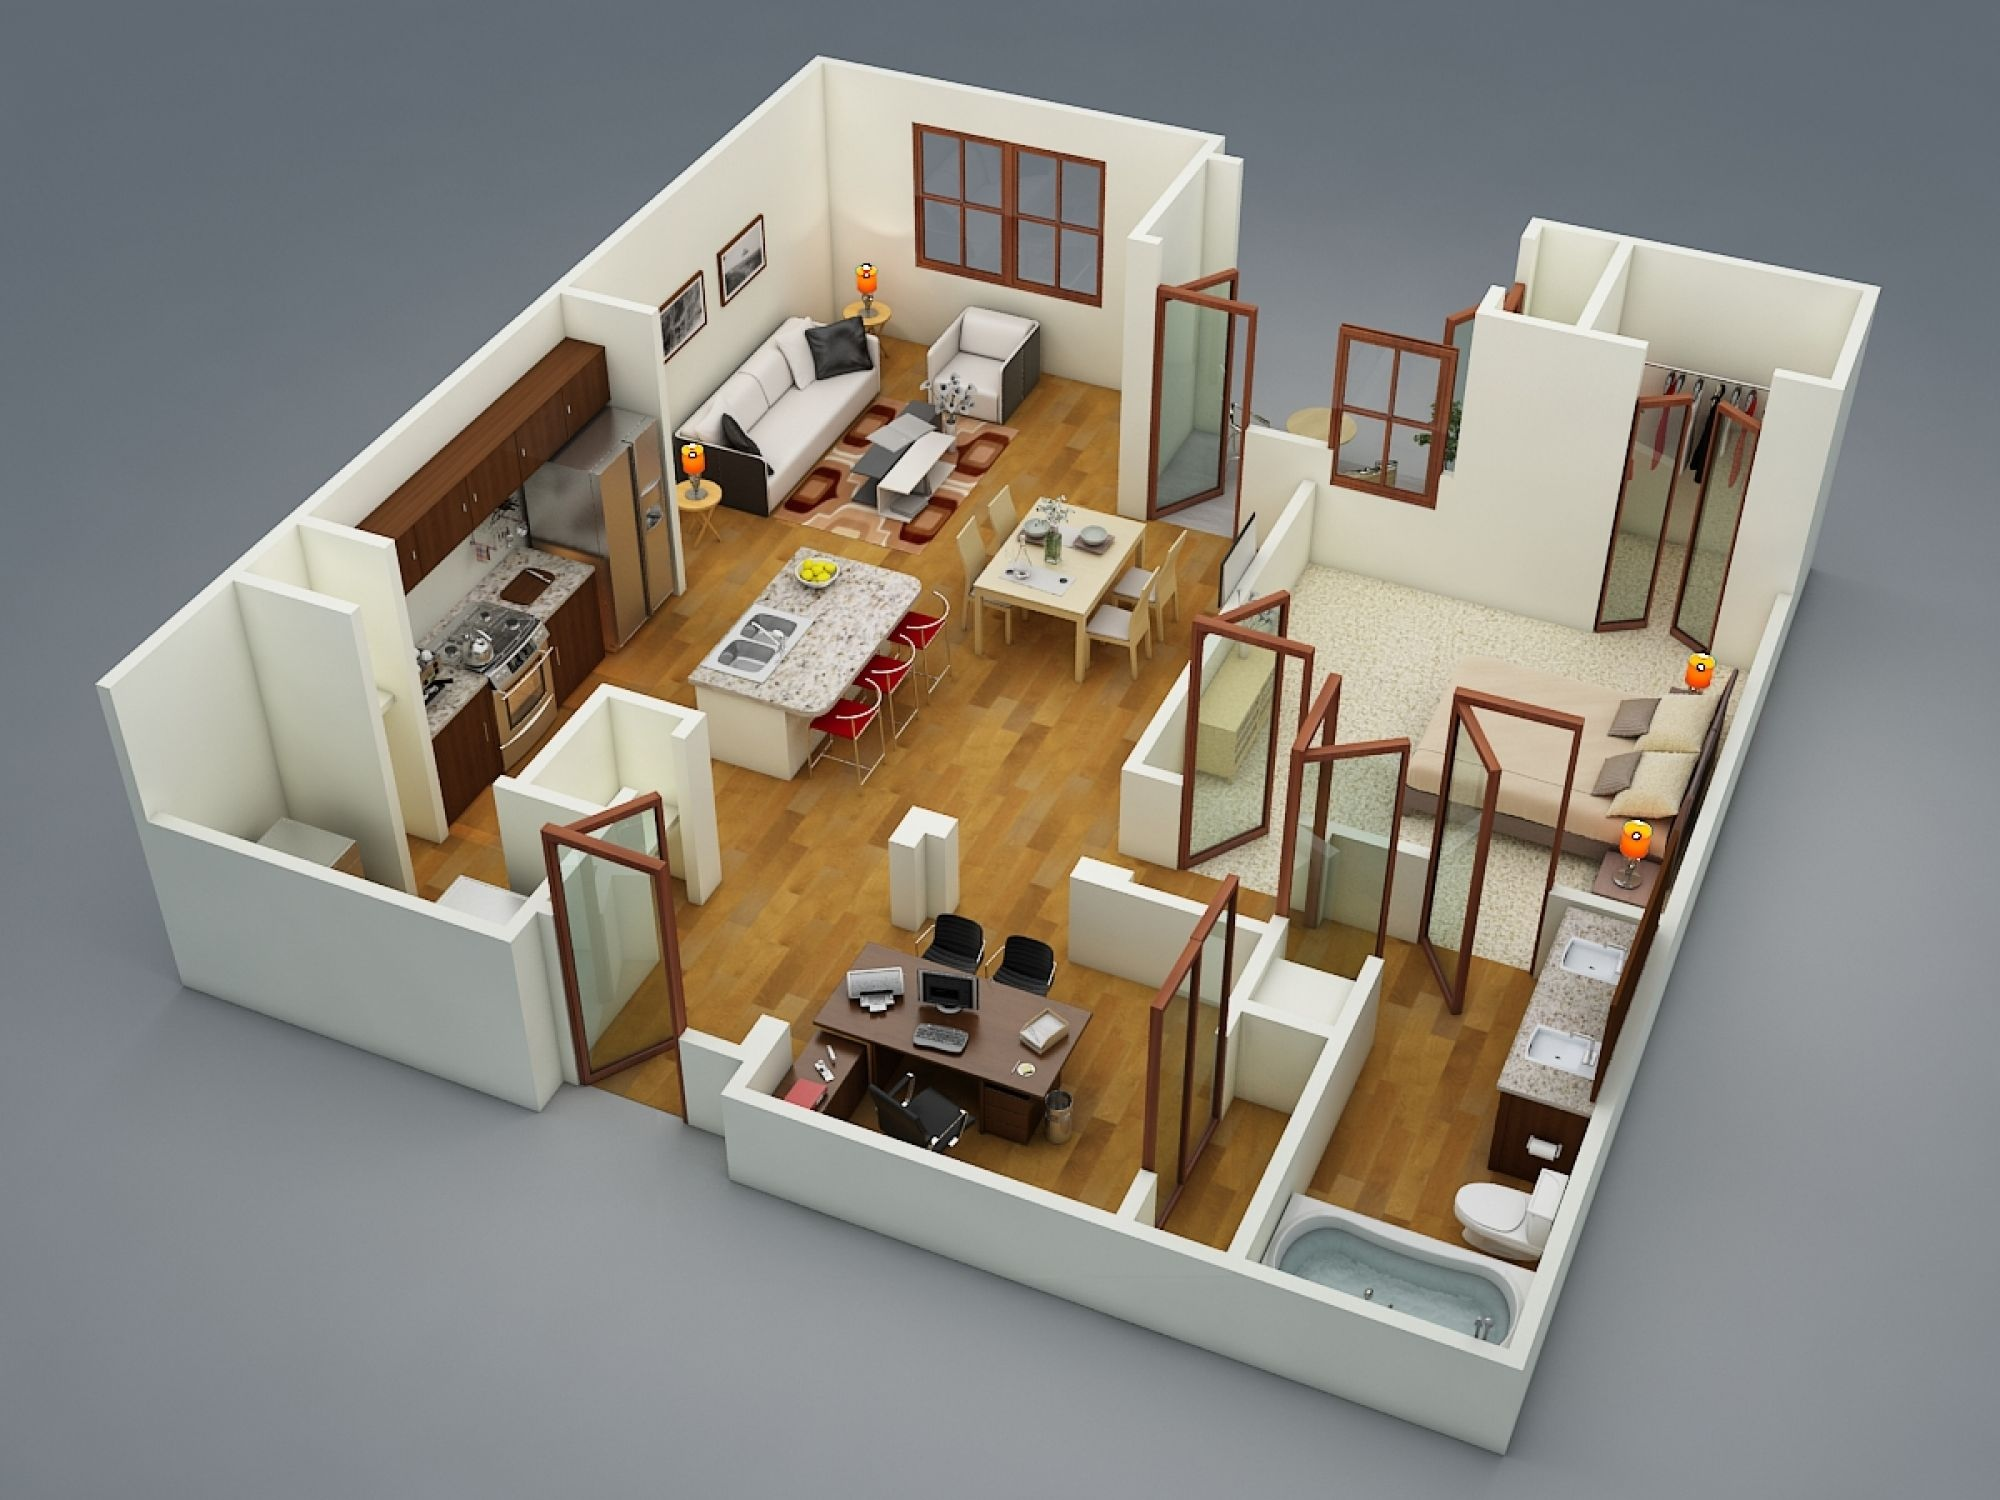 1 bedroom apartmenthouse plans - 2 Bedroom House Plans